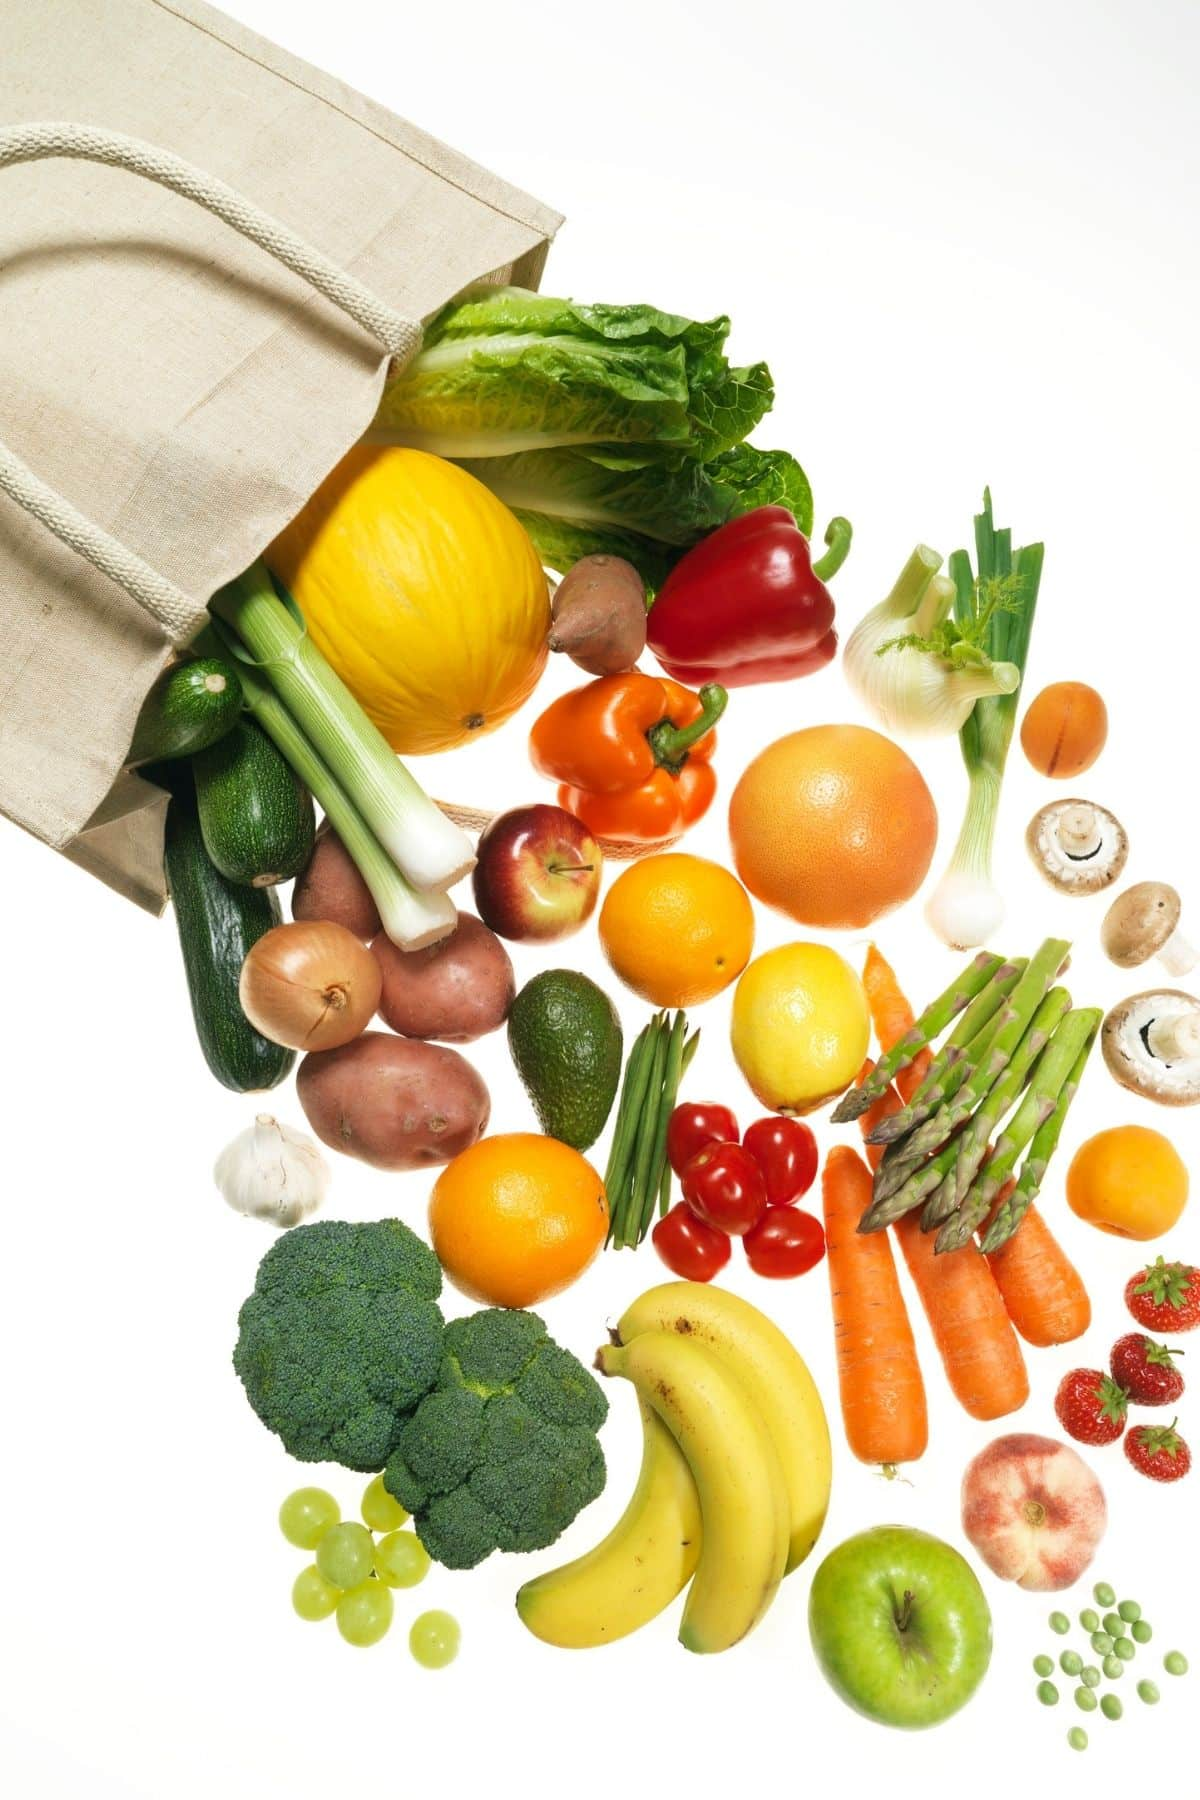 grocery bag with fresh foods